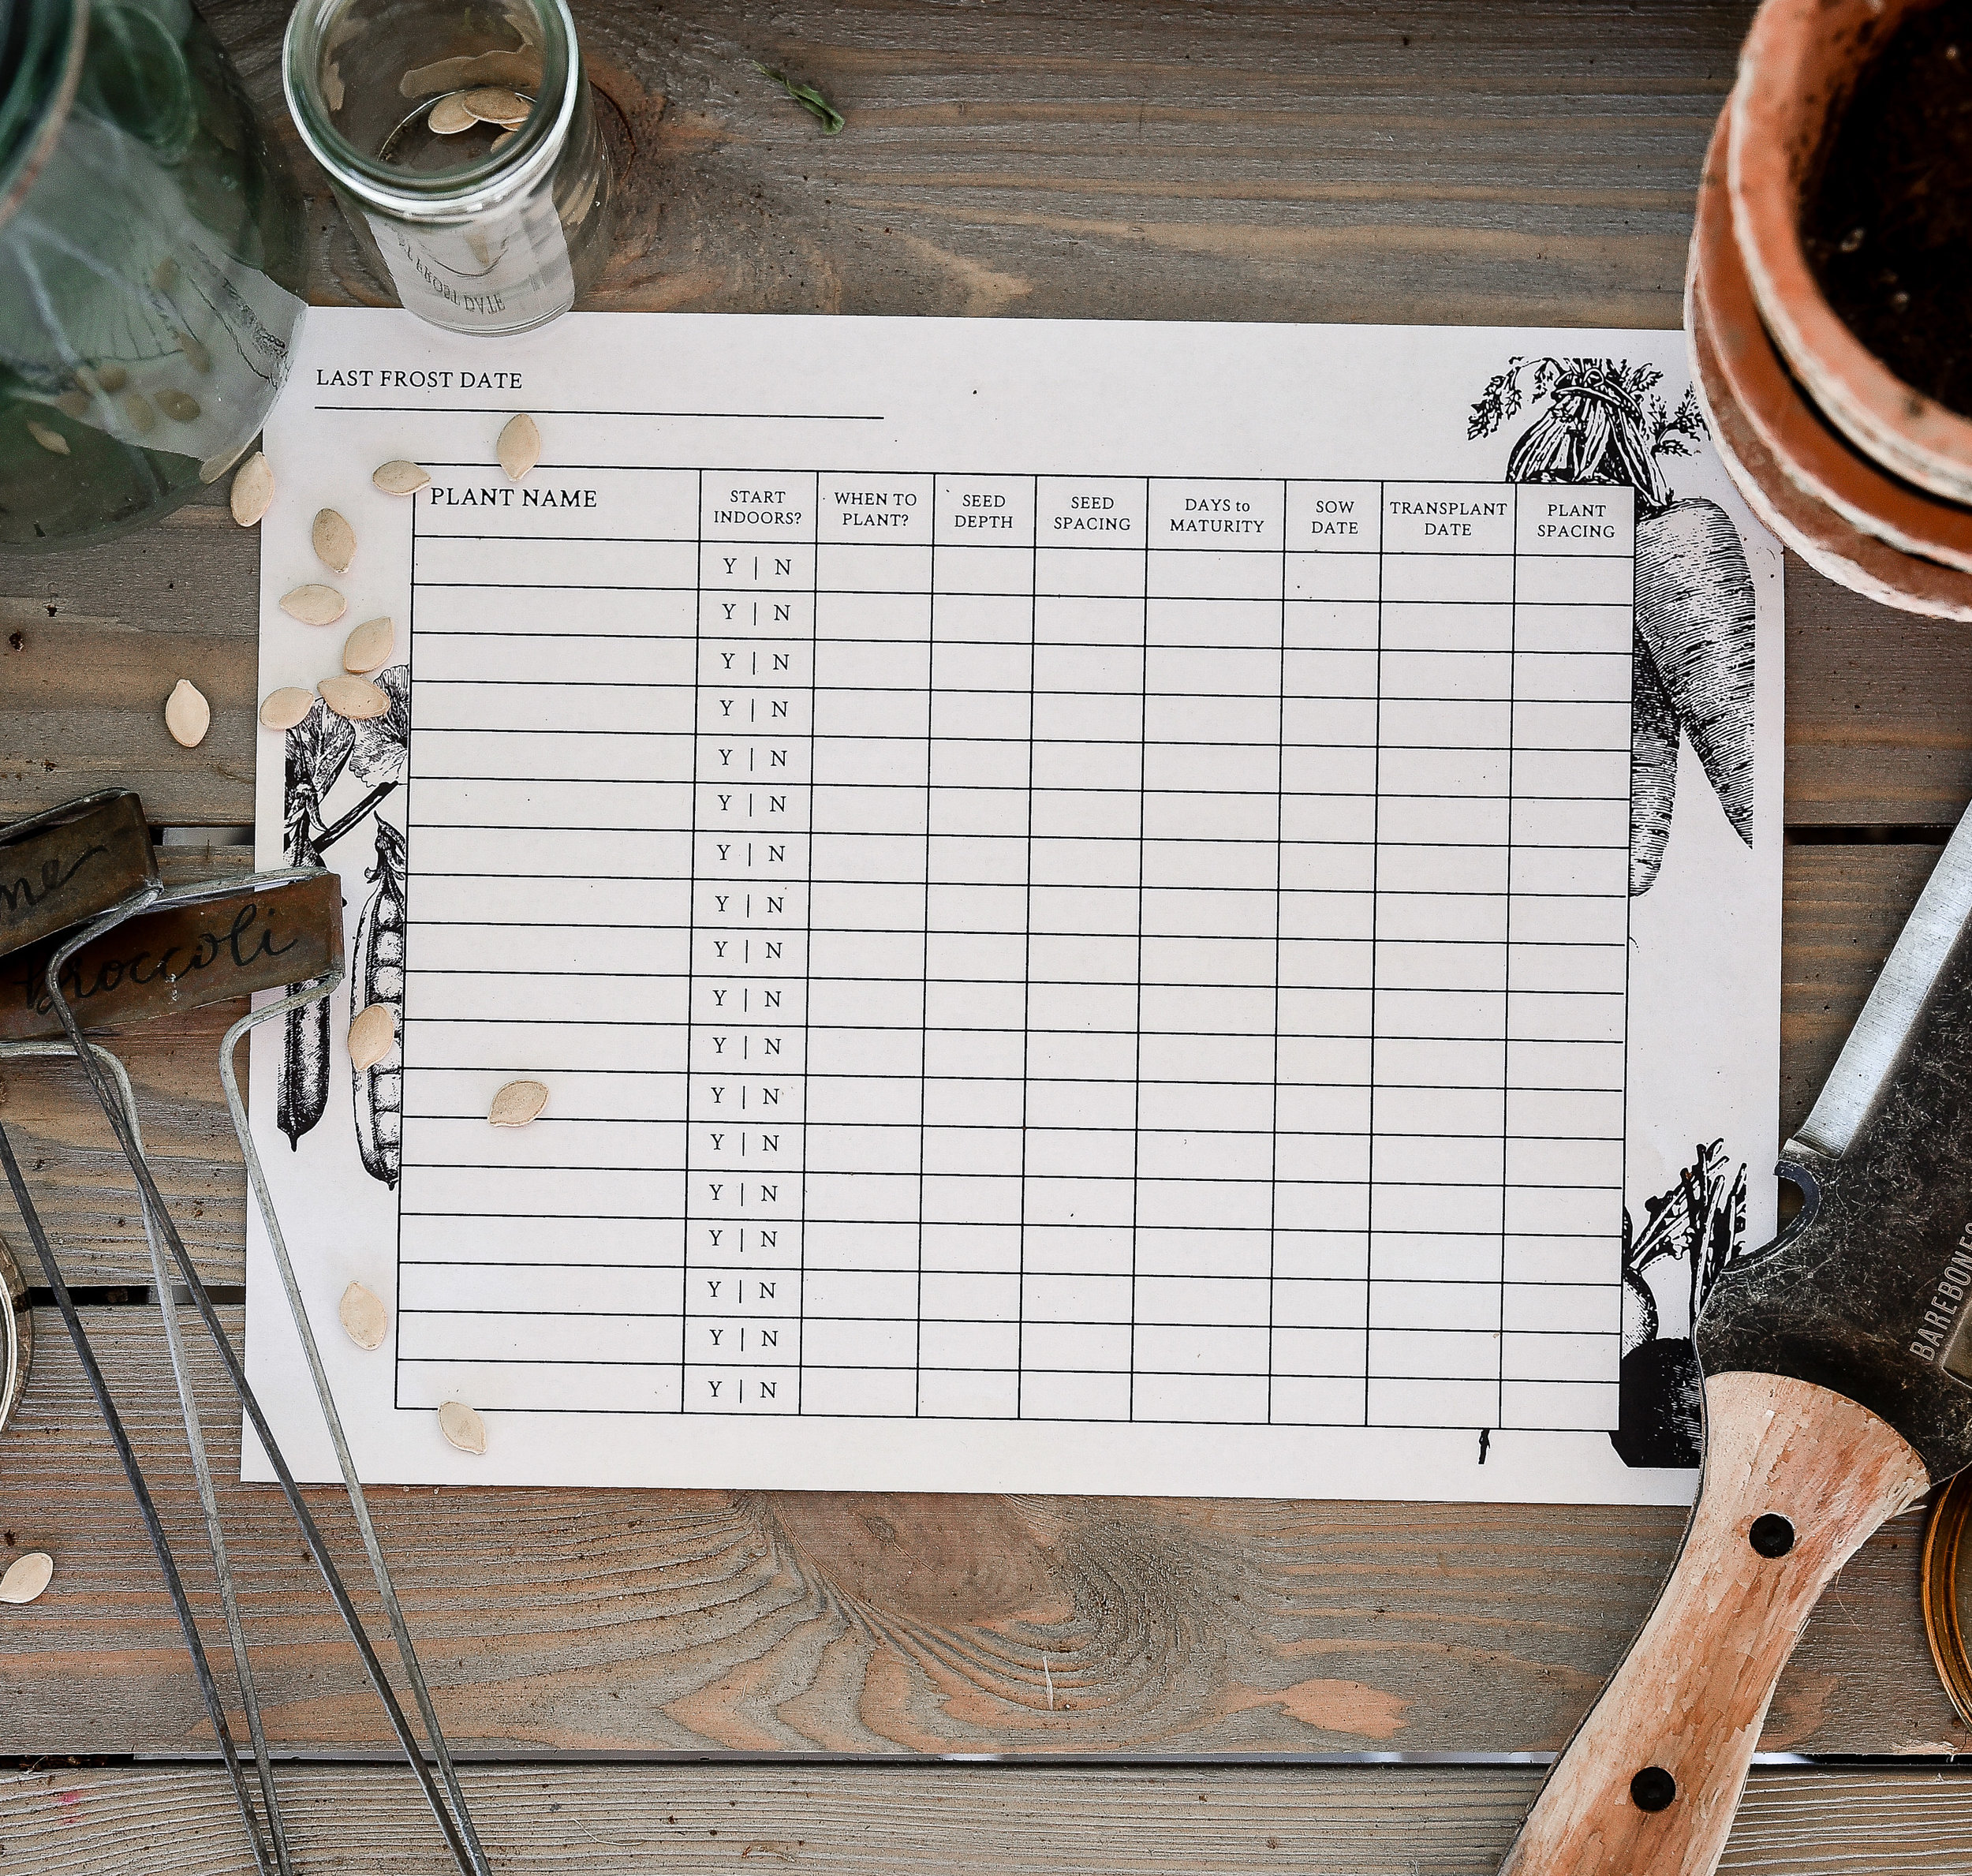 How to start seeds indoors, an easy to use seed starting log book to help you start seeds indoors! #gardening #homesteading #veggiegarden #seedstarting #boxwoodavenue